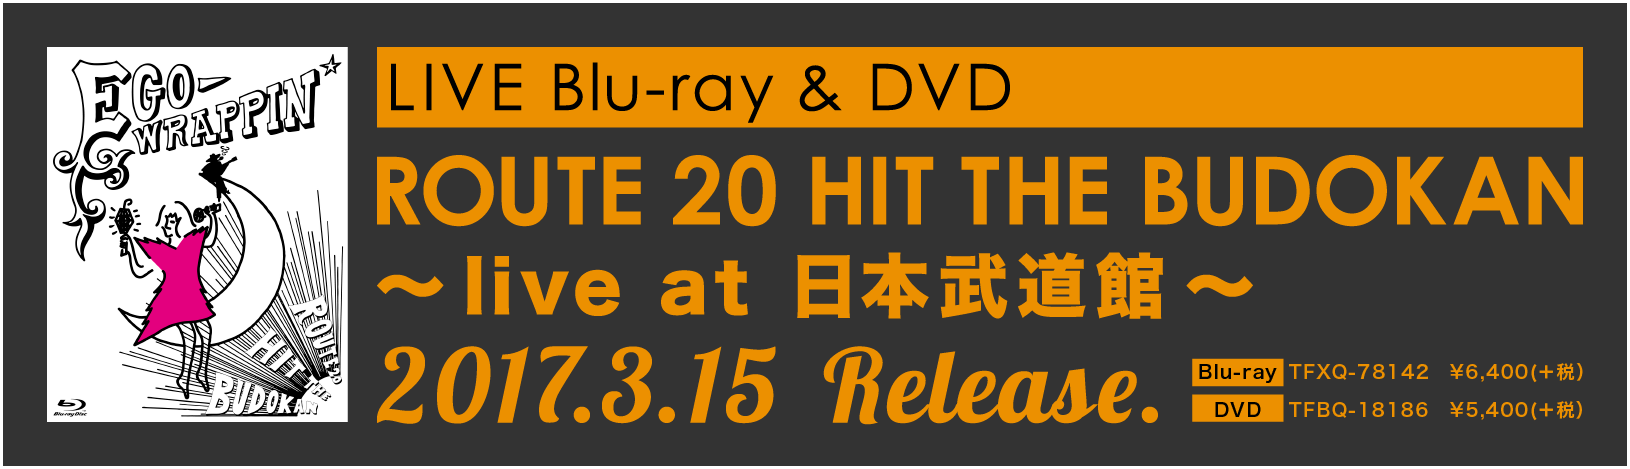 LIVE Blu-ray & DVD / ROUTE 20 HIT THE BUDOKAN ~live at 日本武道館~